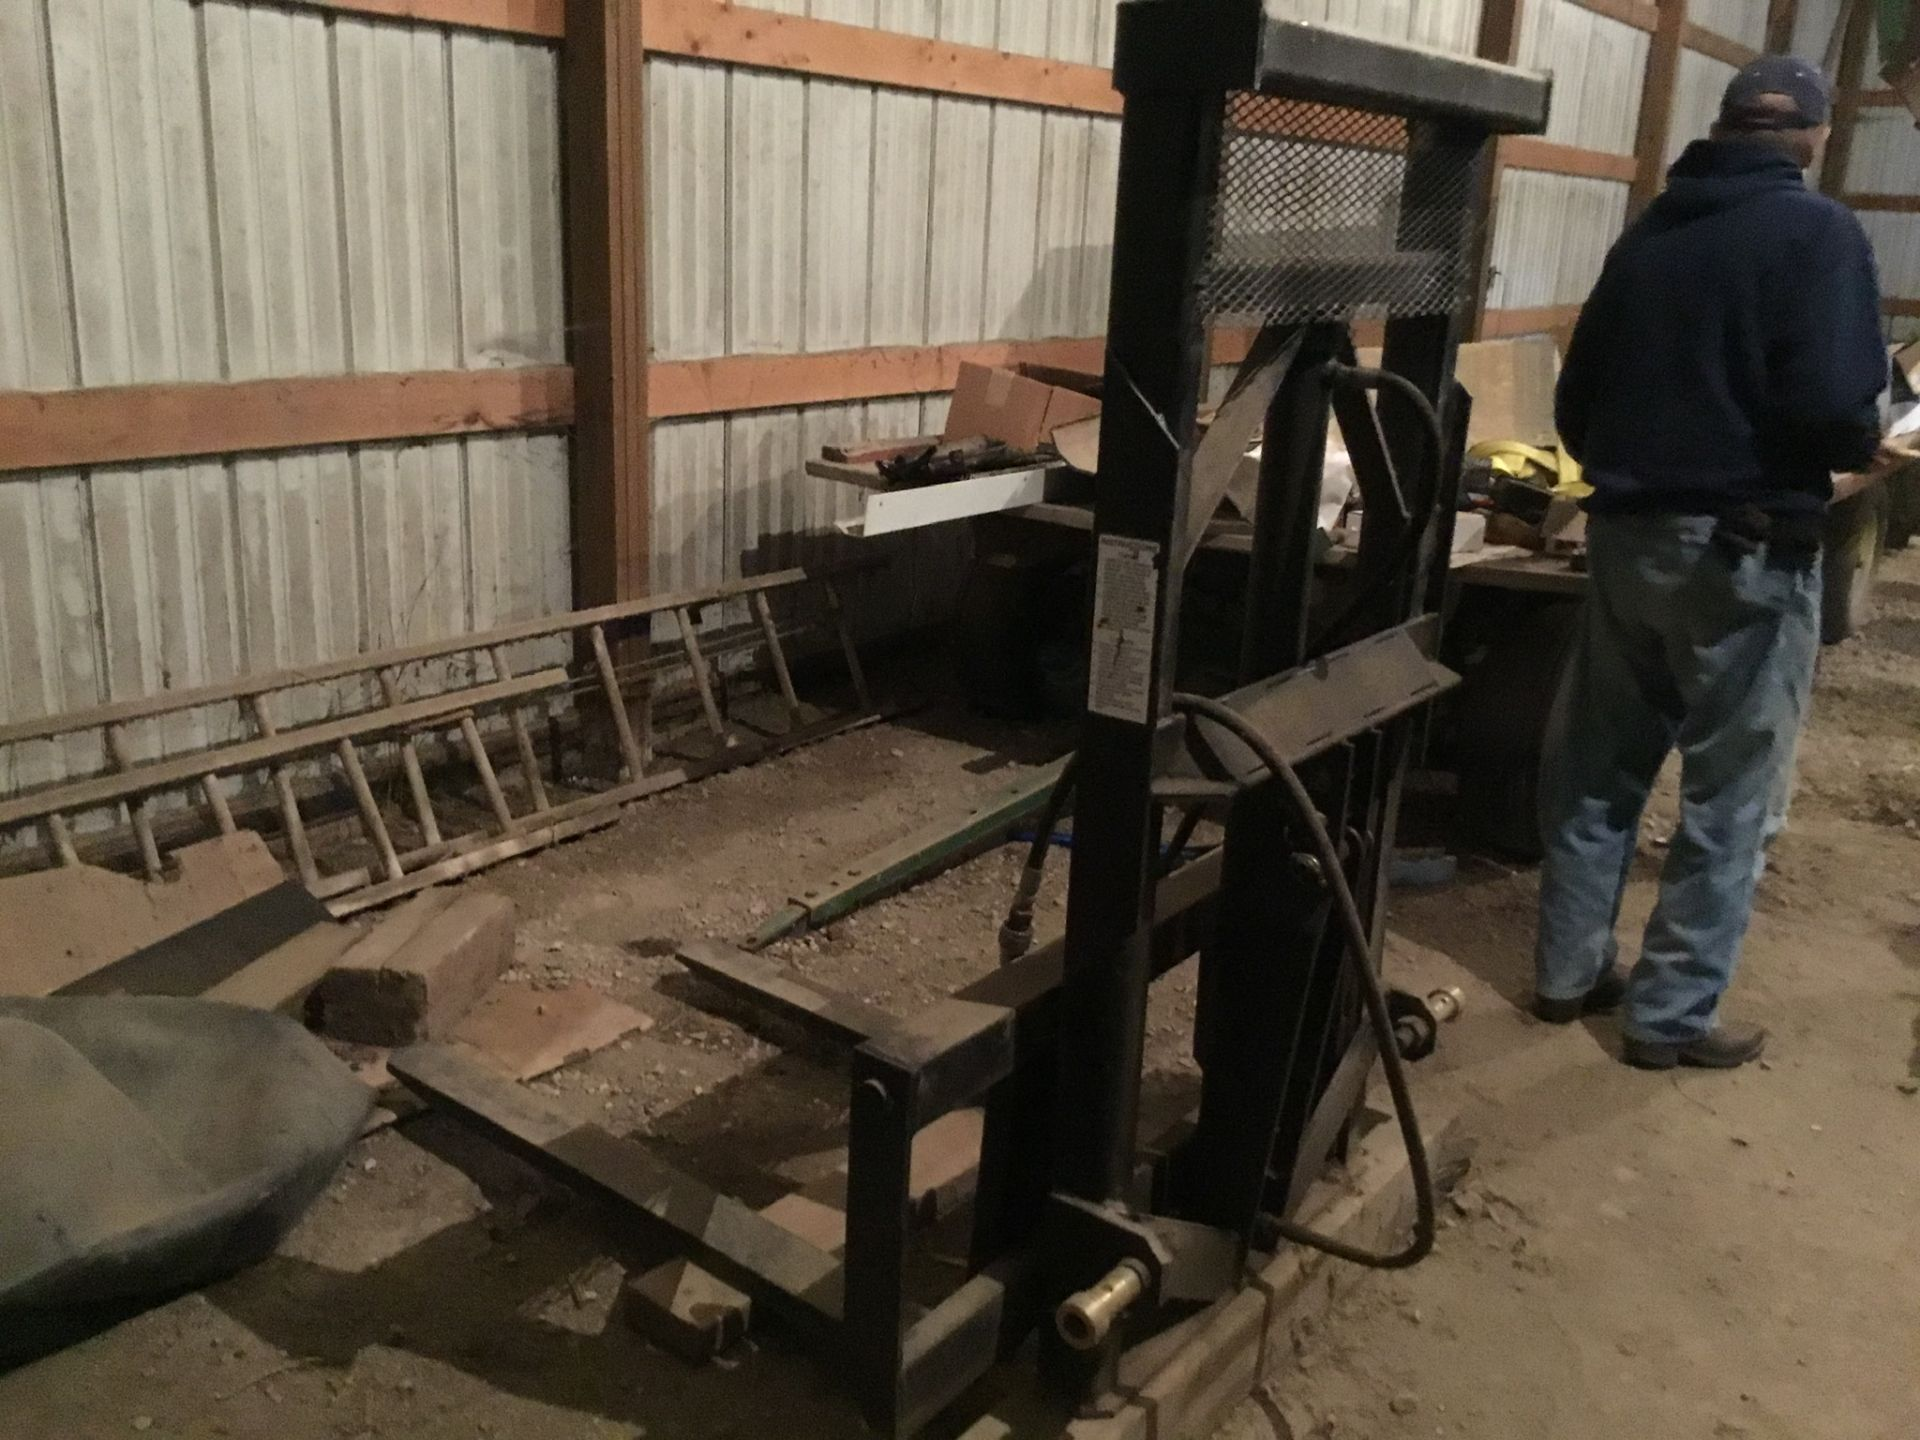 Woods Model 40 3Pt. Hitch Fork Lift 2 Stage, Serial #4560 - Image 3 of 4